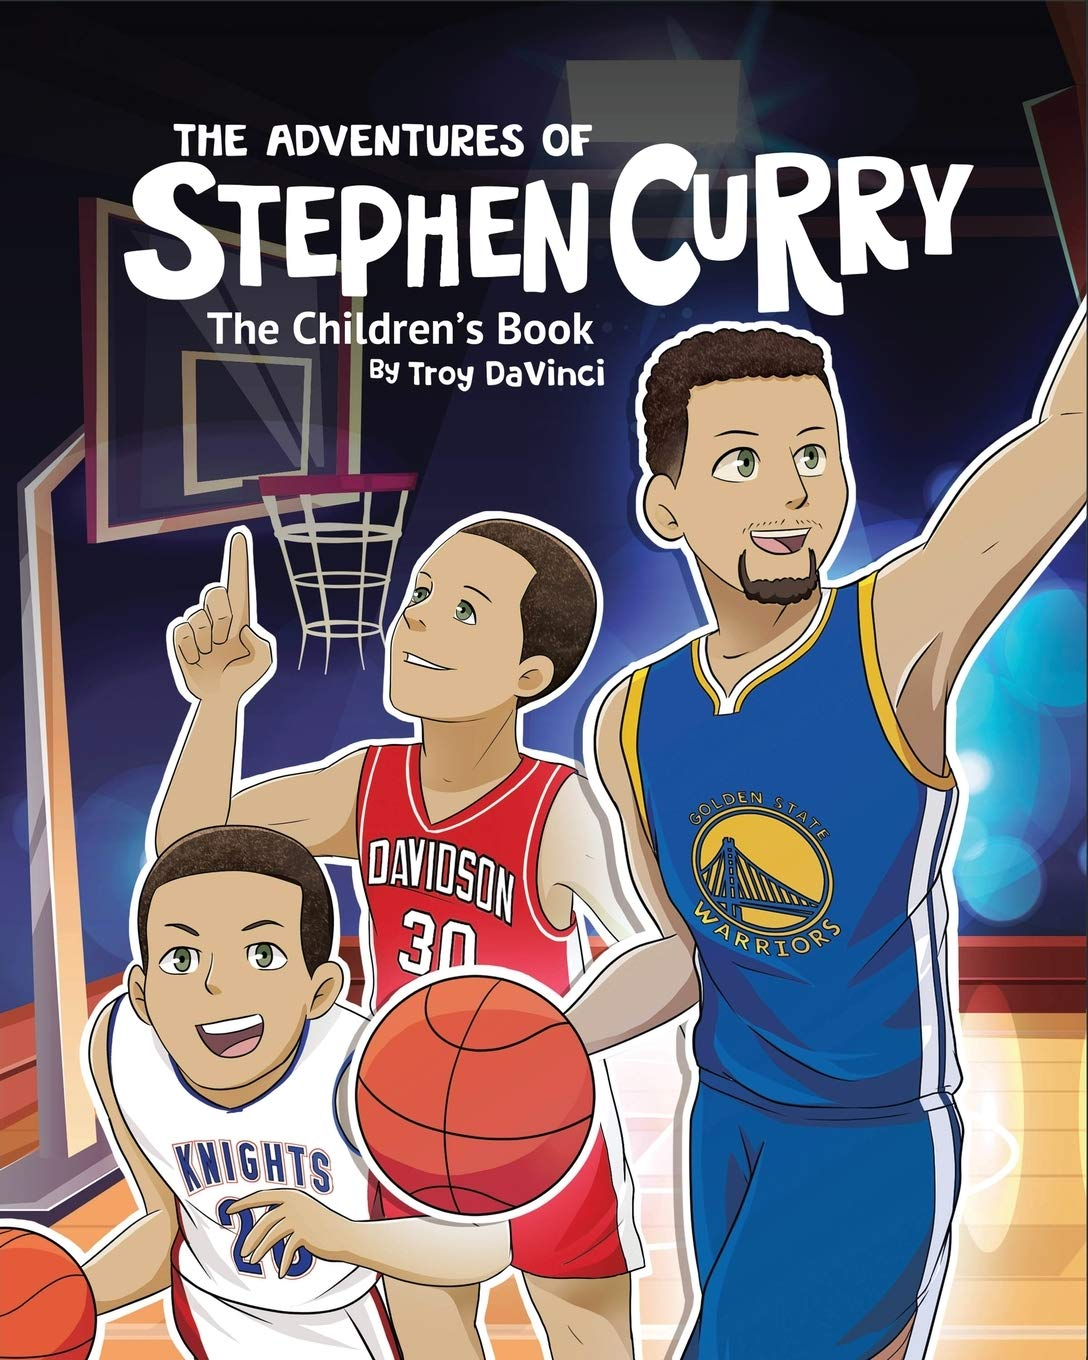 Image OfThe Adventures Of Stephen Curry: The Children's Book